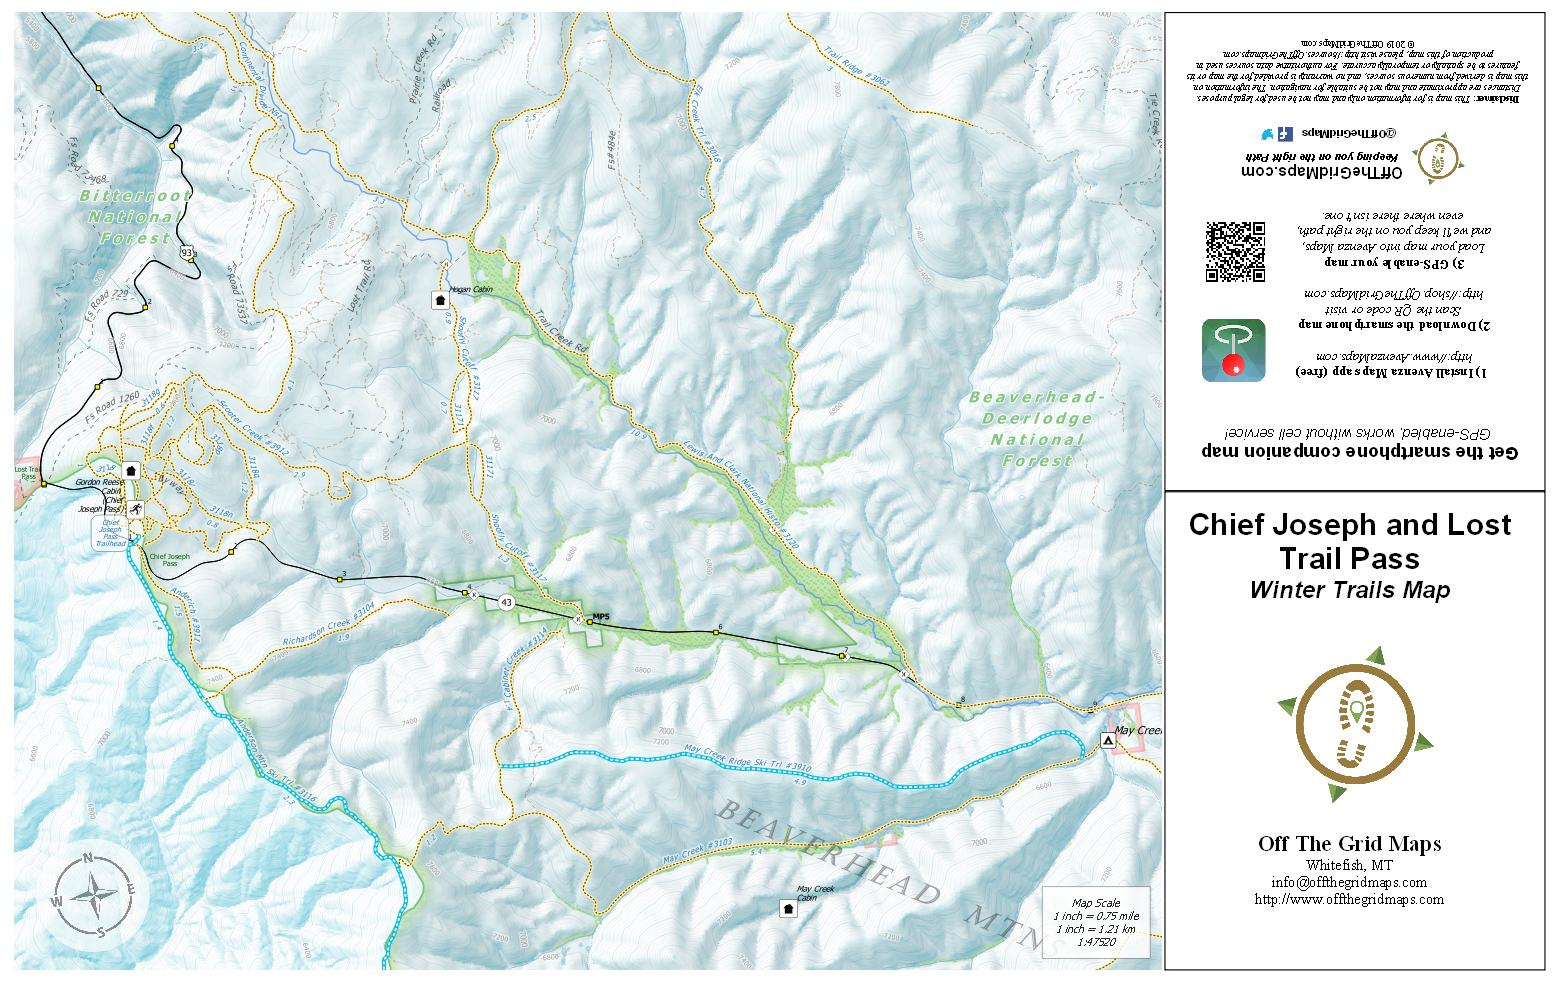 Chief Joseph and Lot Trail Pass Winter Trails map